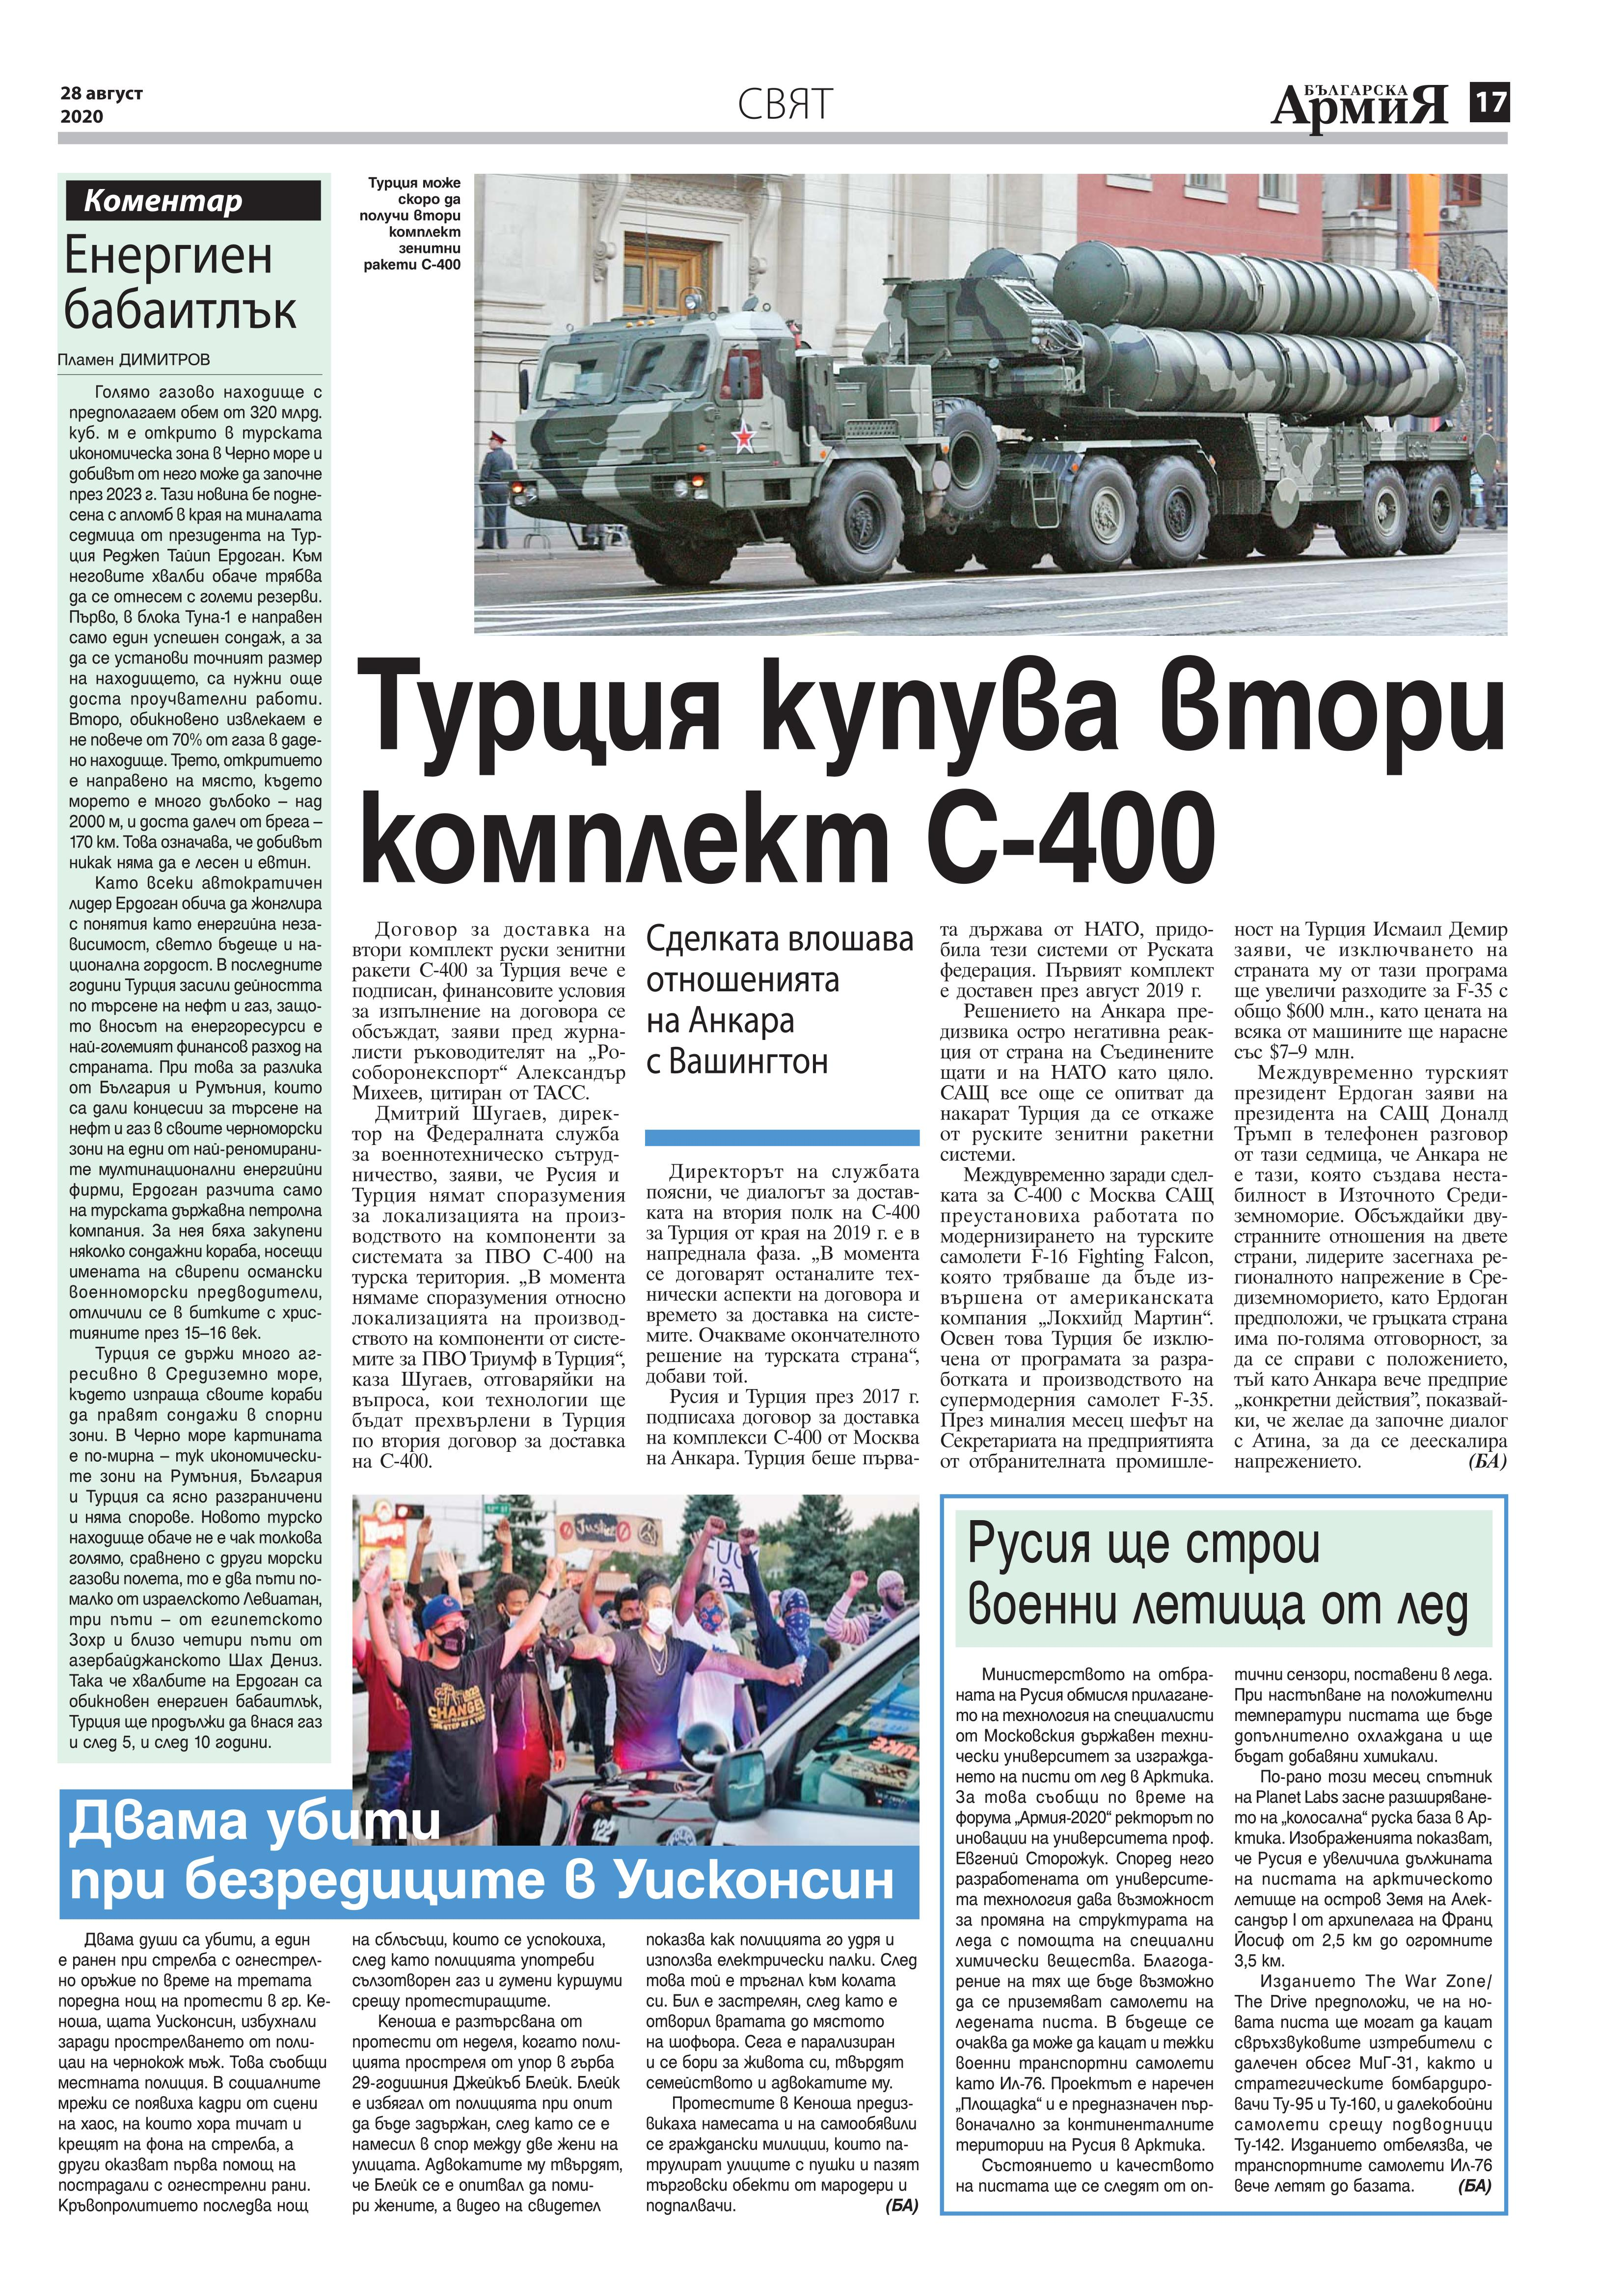 https://armymedia.bg/wp-content/uploads/2015/06/17.page1_-150.jpg